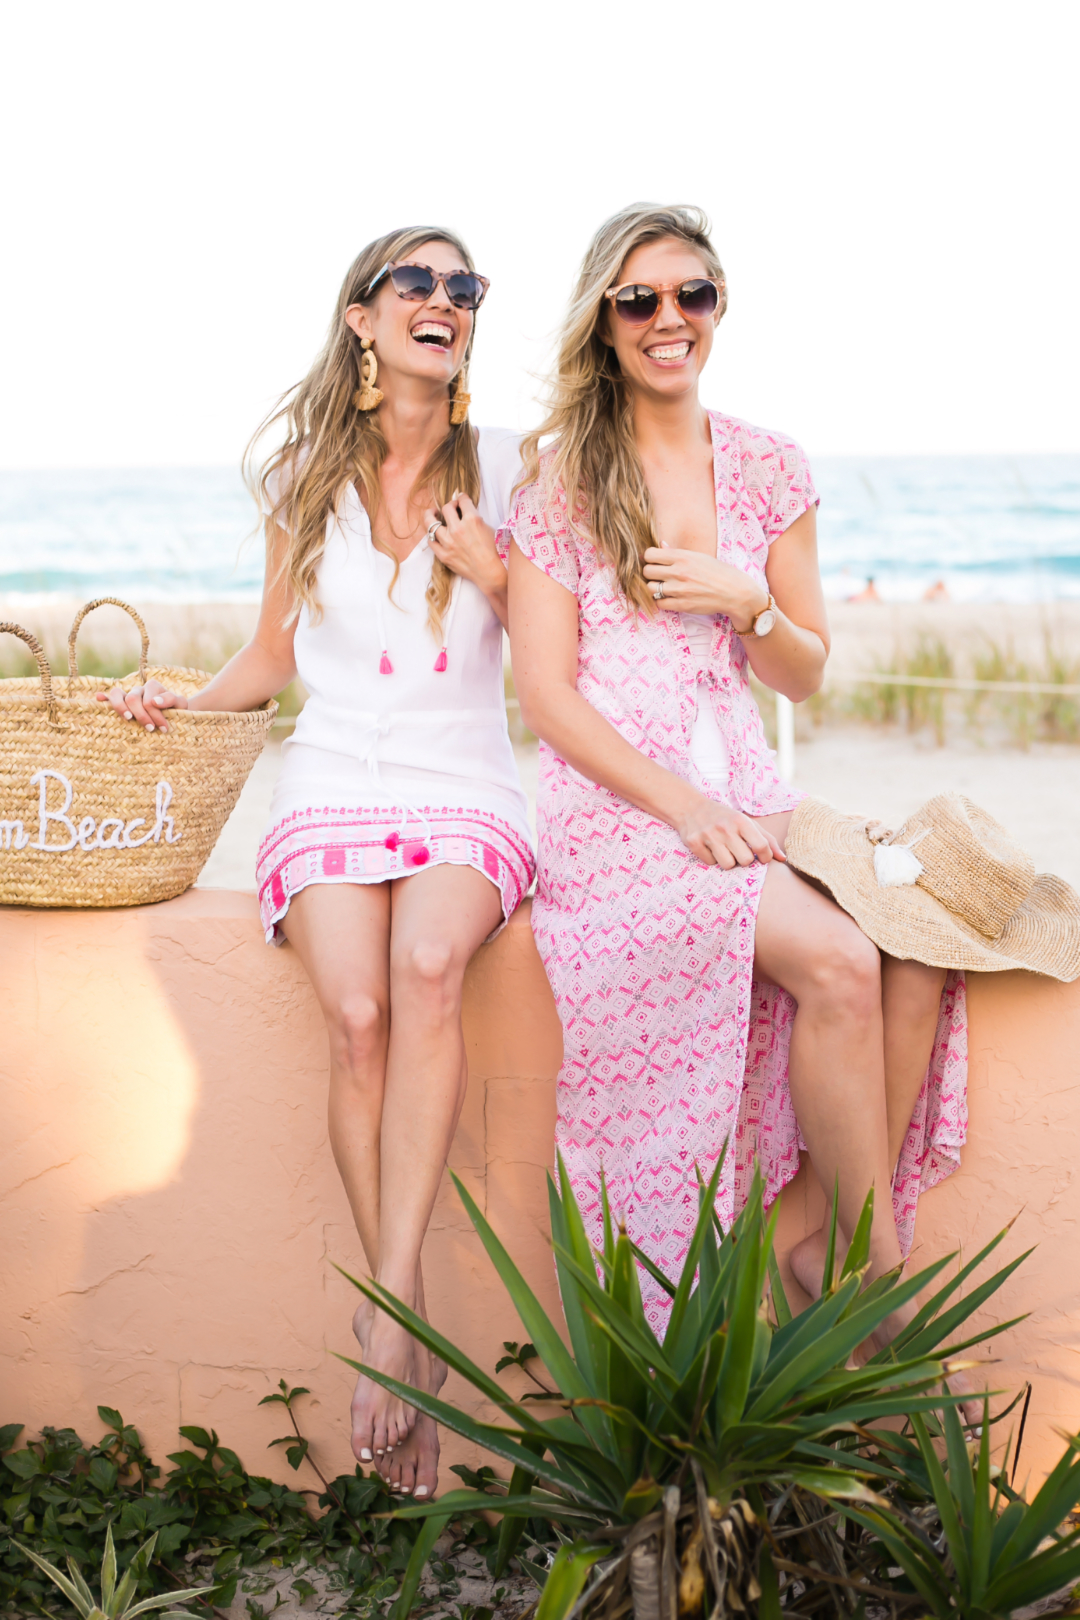 Fashion: Letarte with Palm Beach Lately